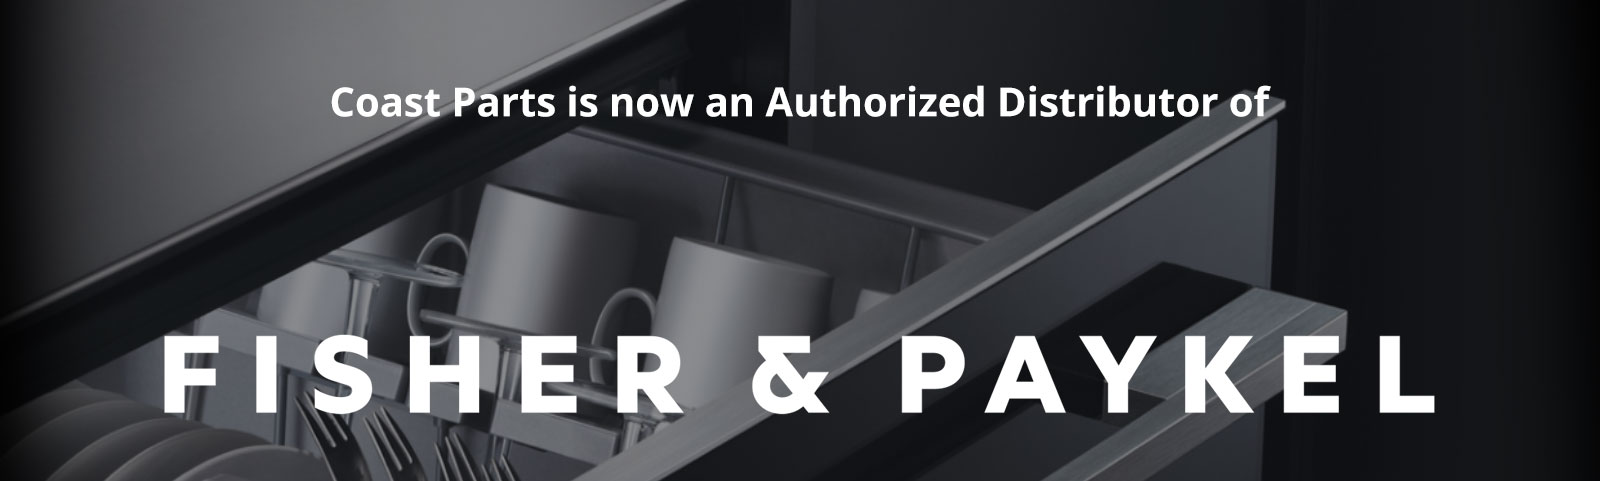 Coast Parts is now an authorized distributor of Fisher-Paykel